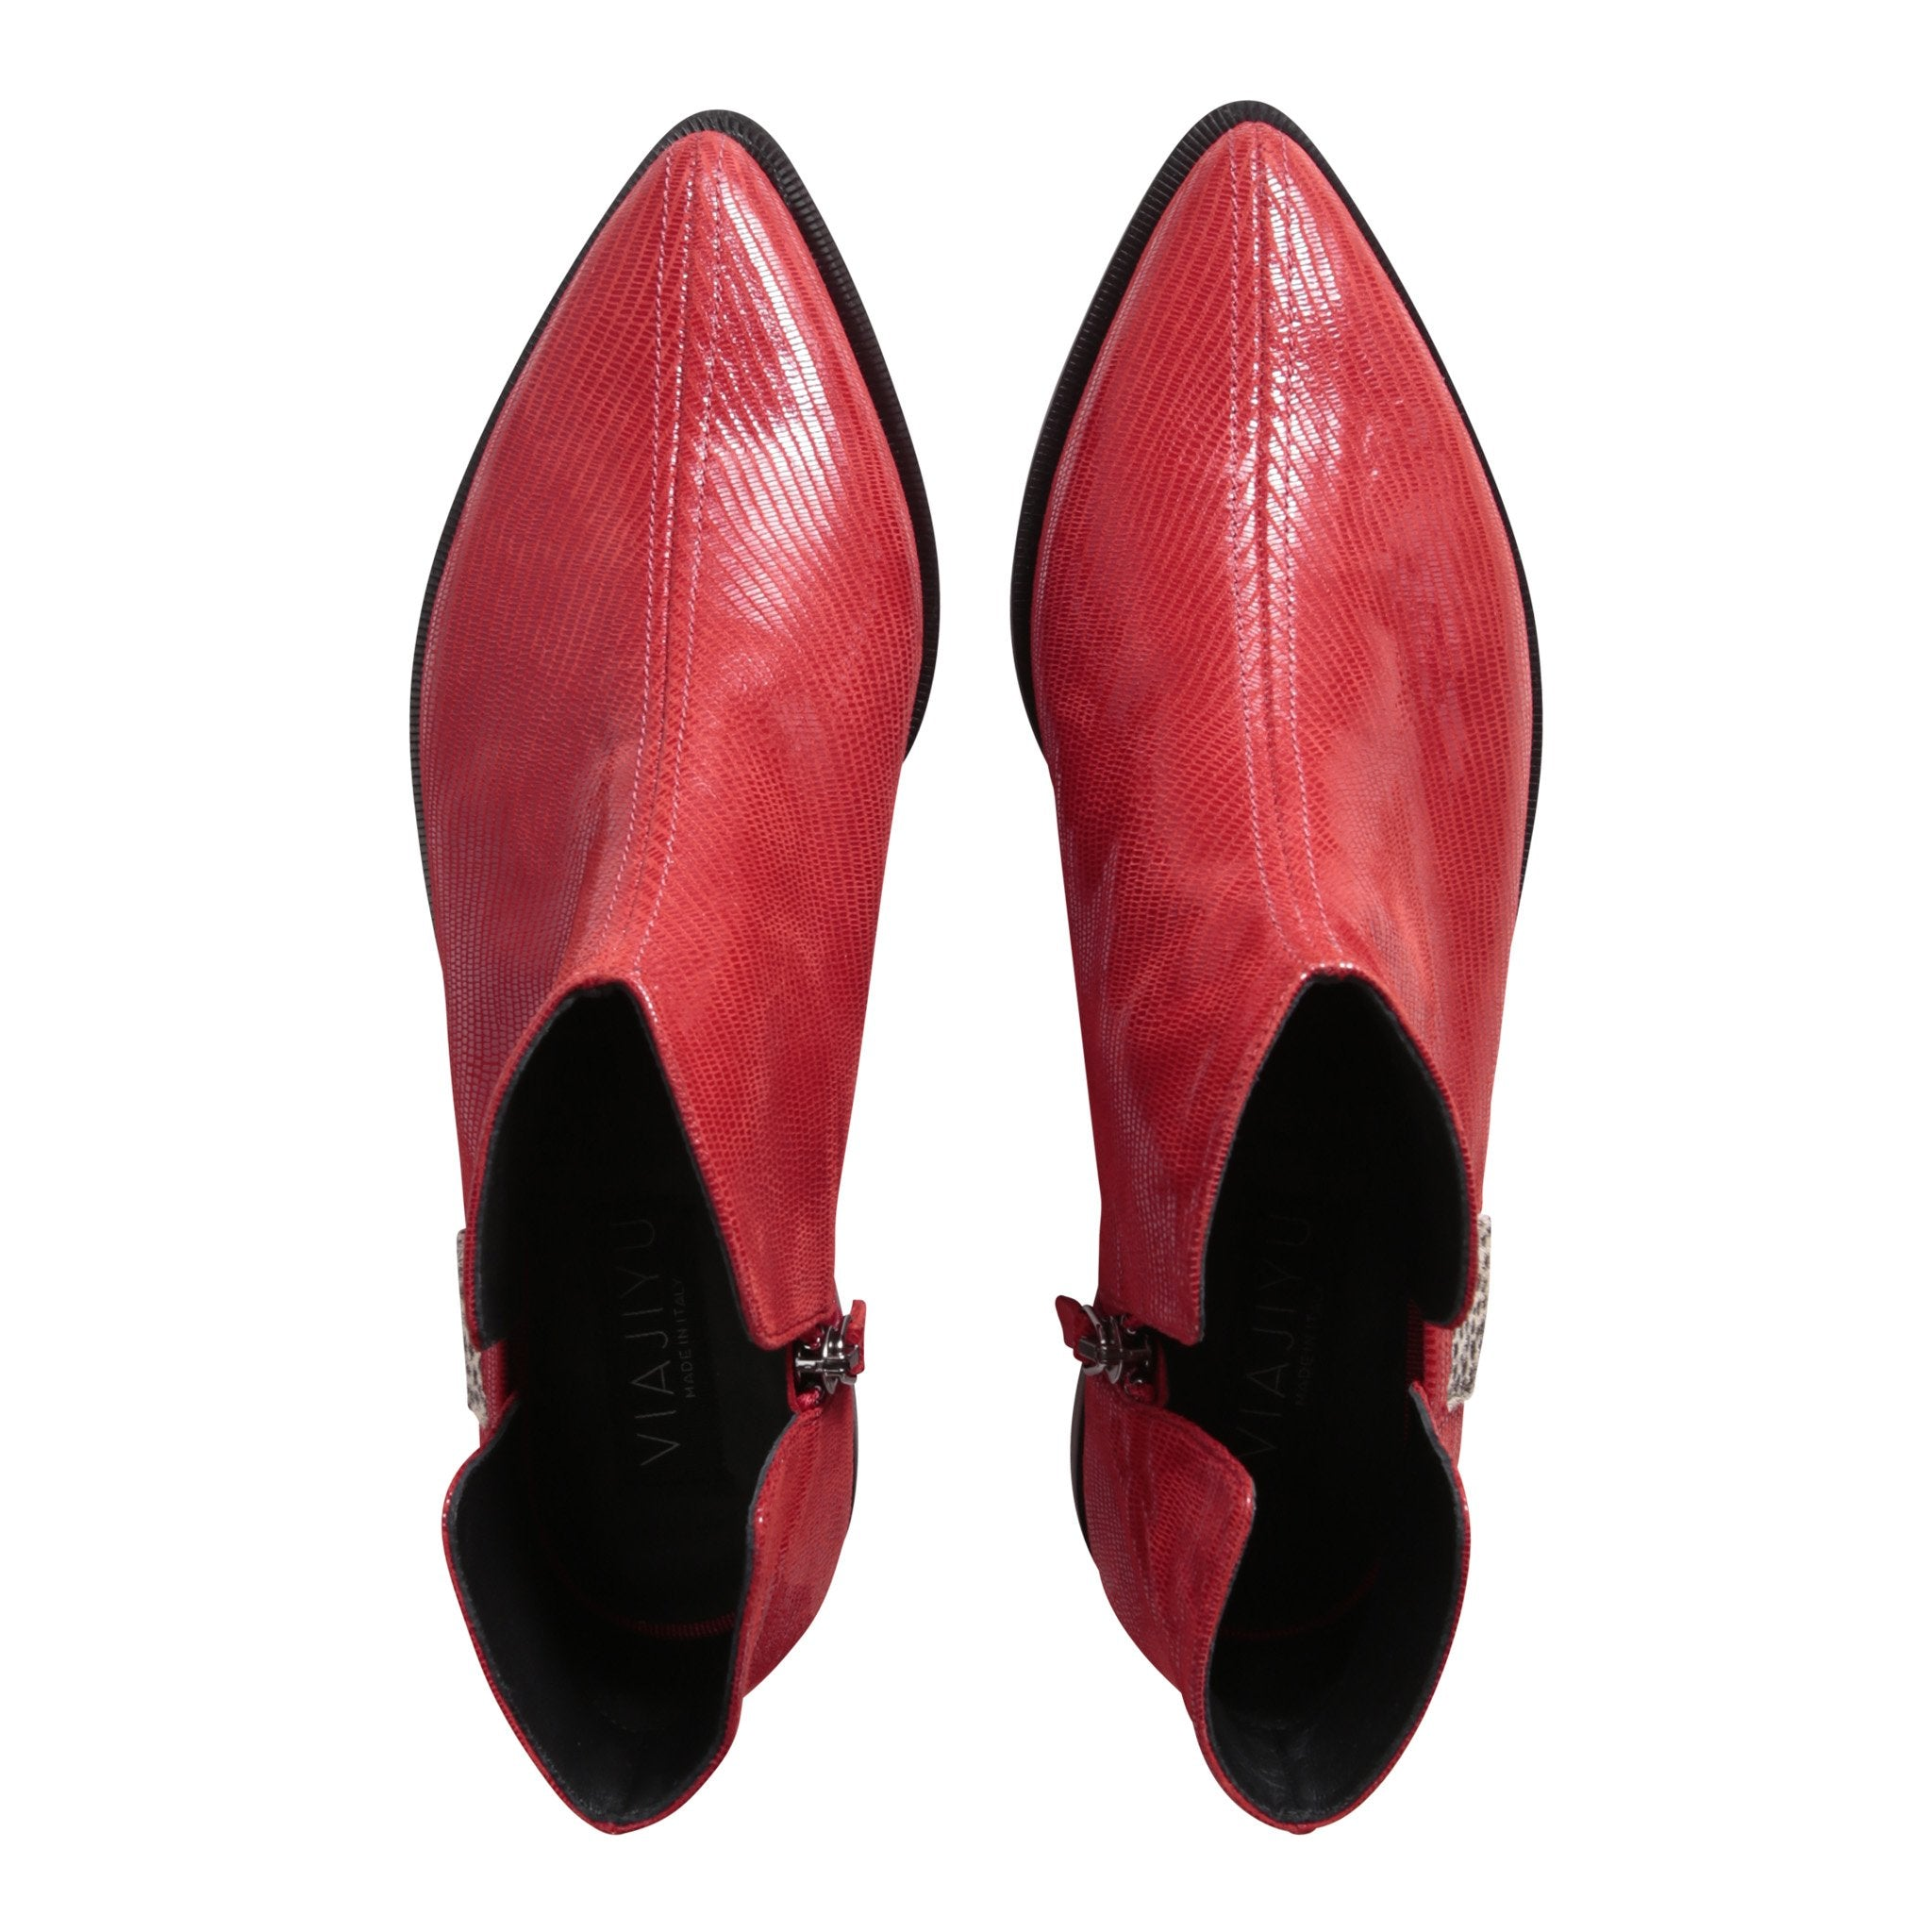 RAVELLO - Varanus Rosso + Panna Cheetah, VIAJIYU - Women's Hand Made Sustainable Luxury Shoes. Made in Italy. Made to Order.